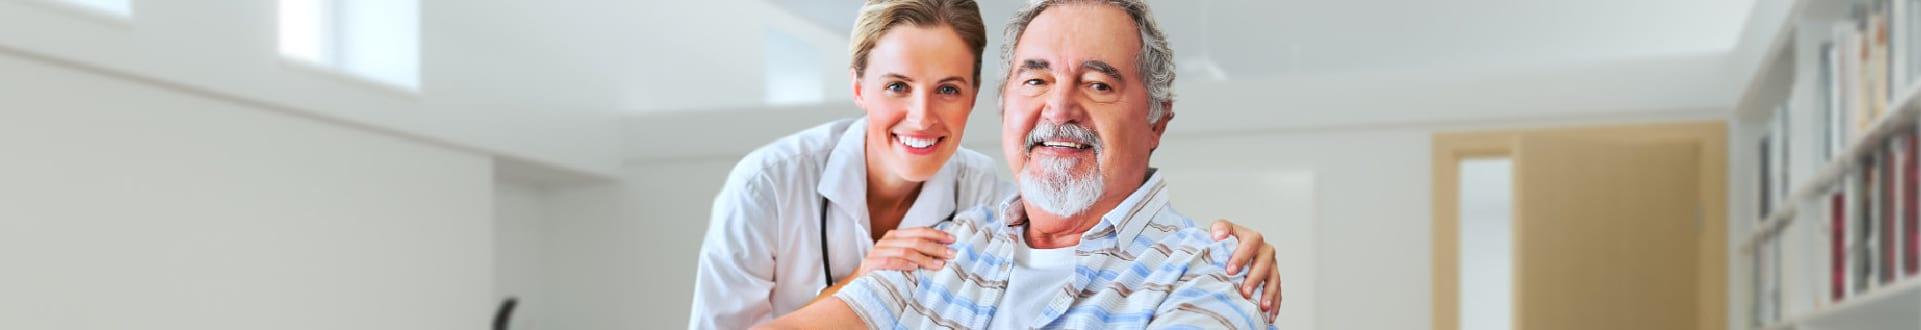 senior patient and caregiver smiling